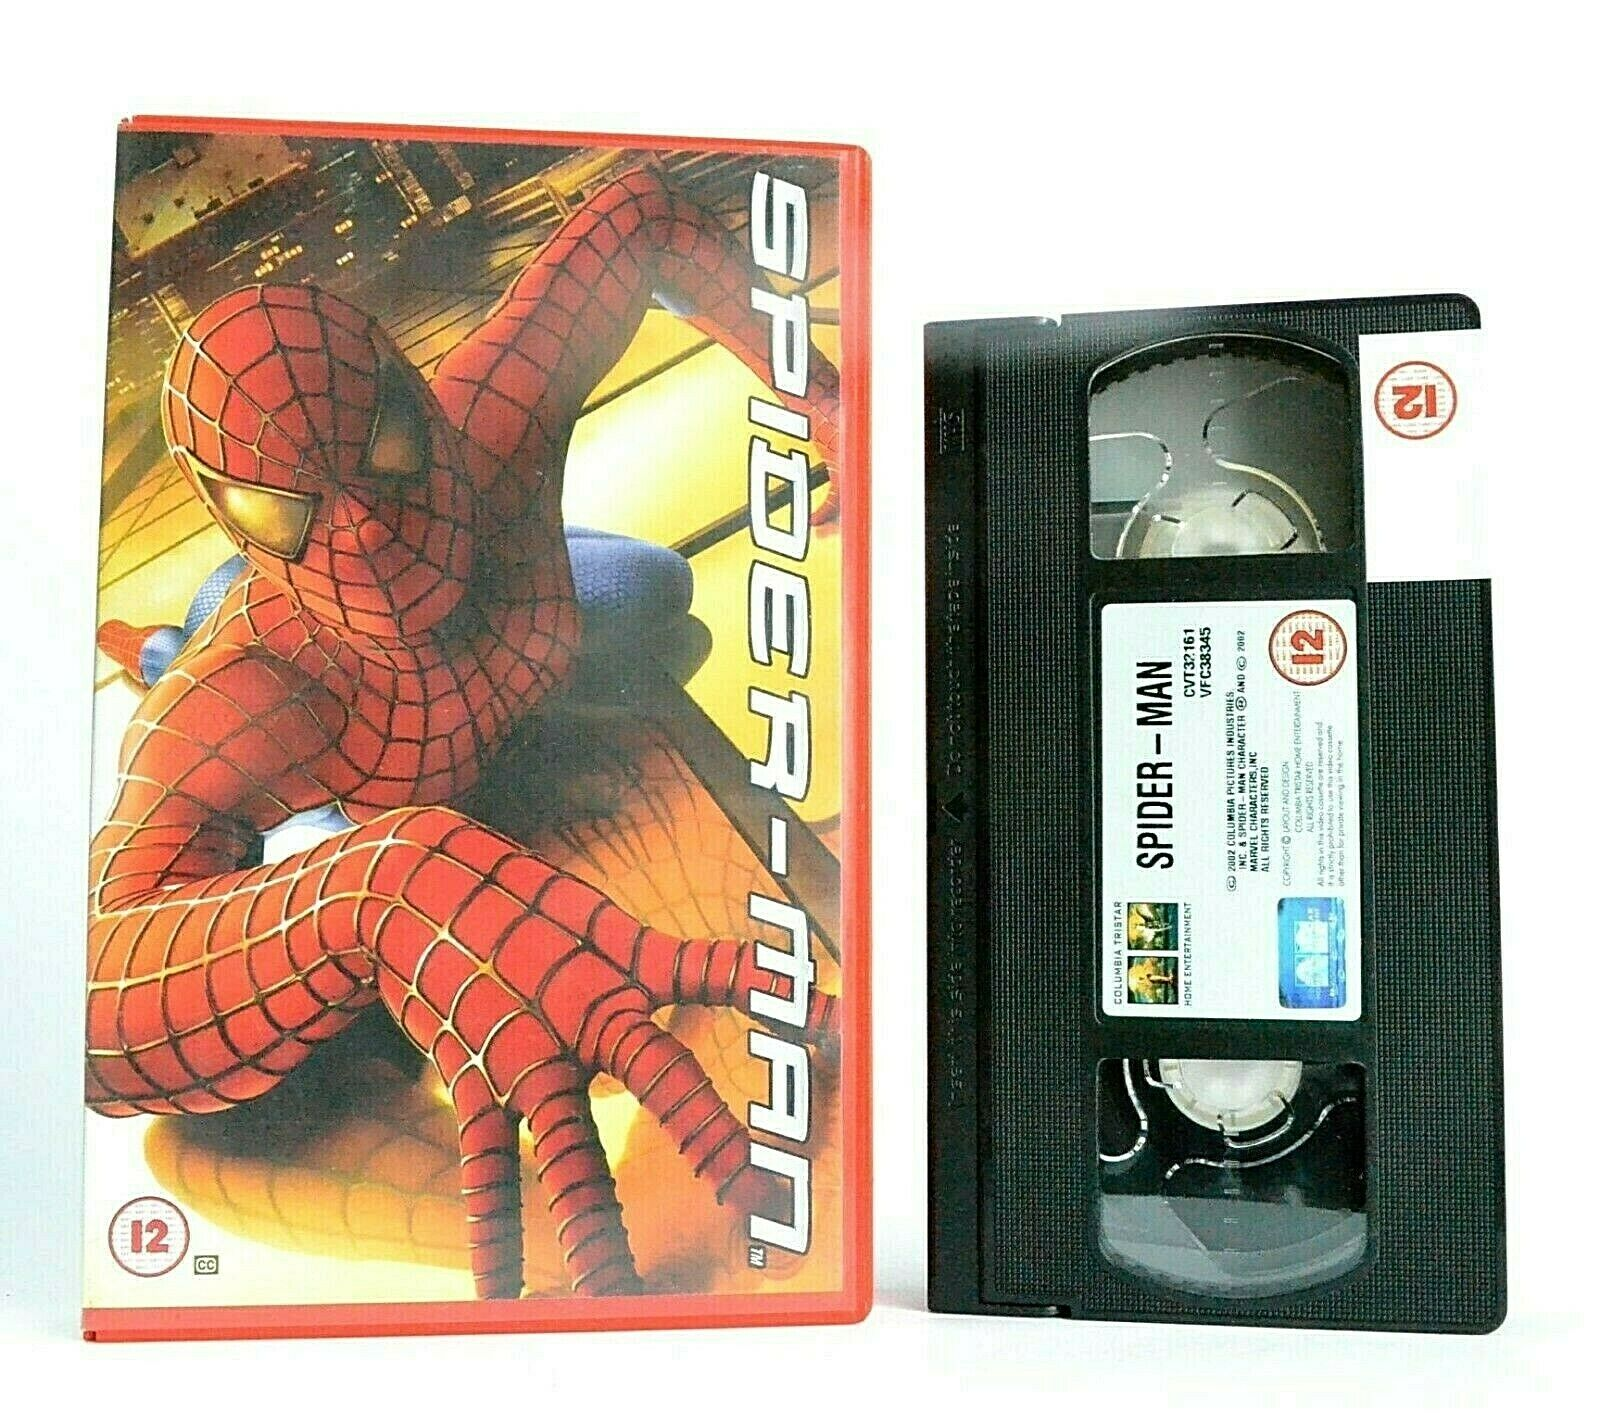 Spider Man [Sam Raimi]: Superhero Action [Large Box] - Tobey Maguire - Pal VHS